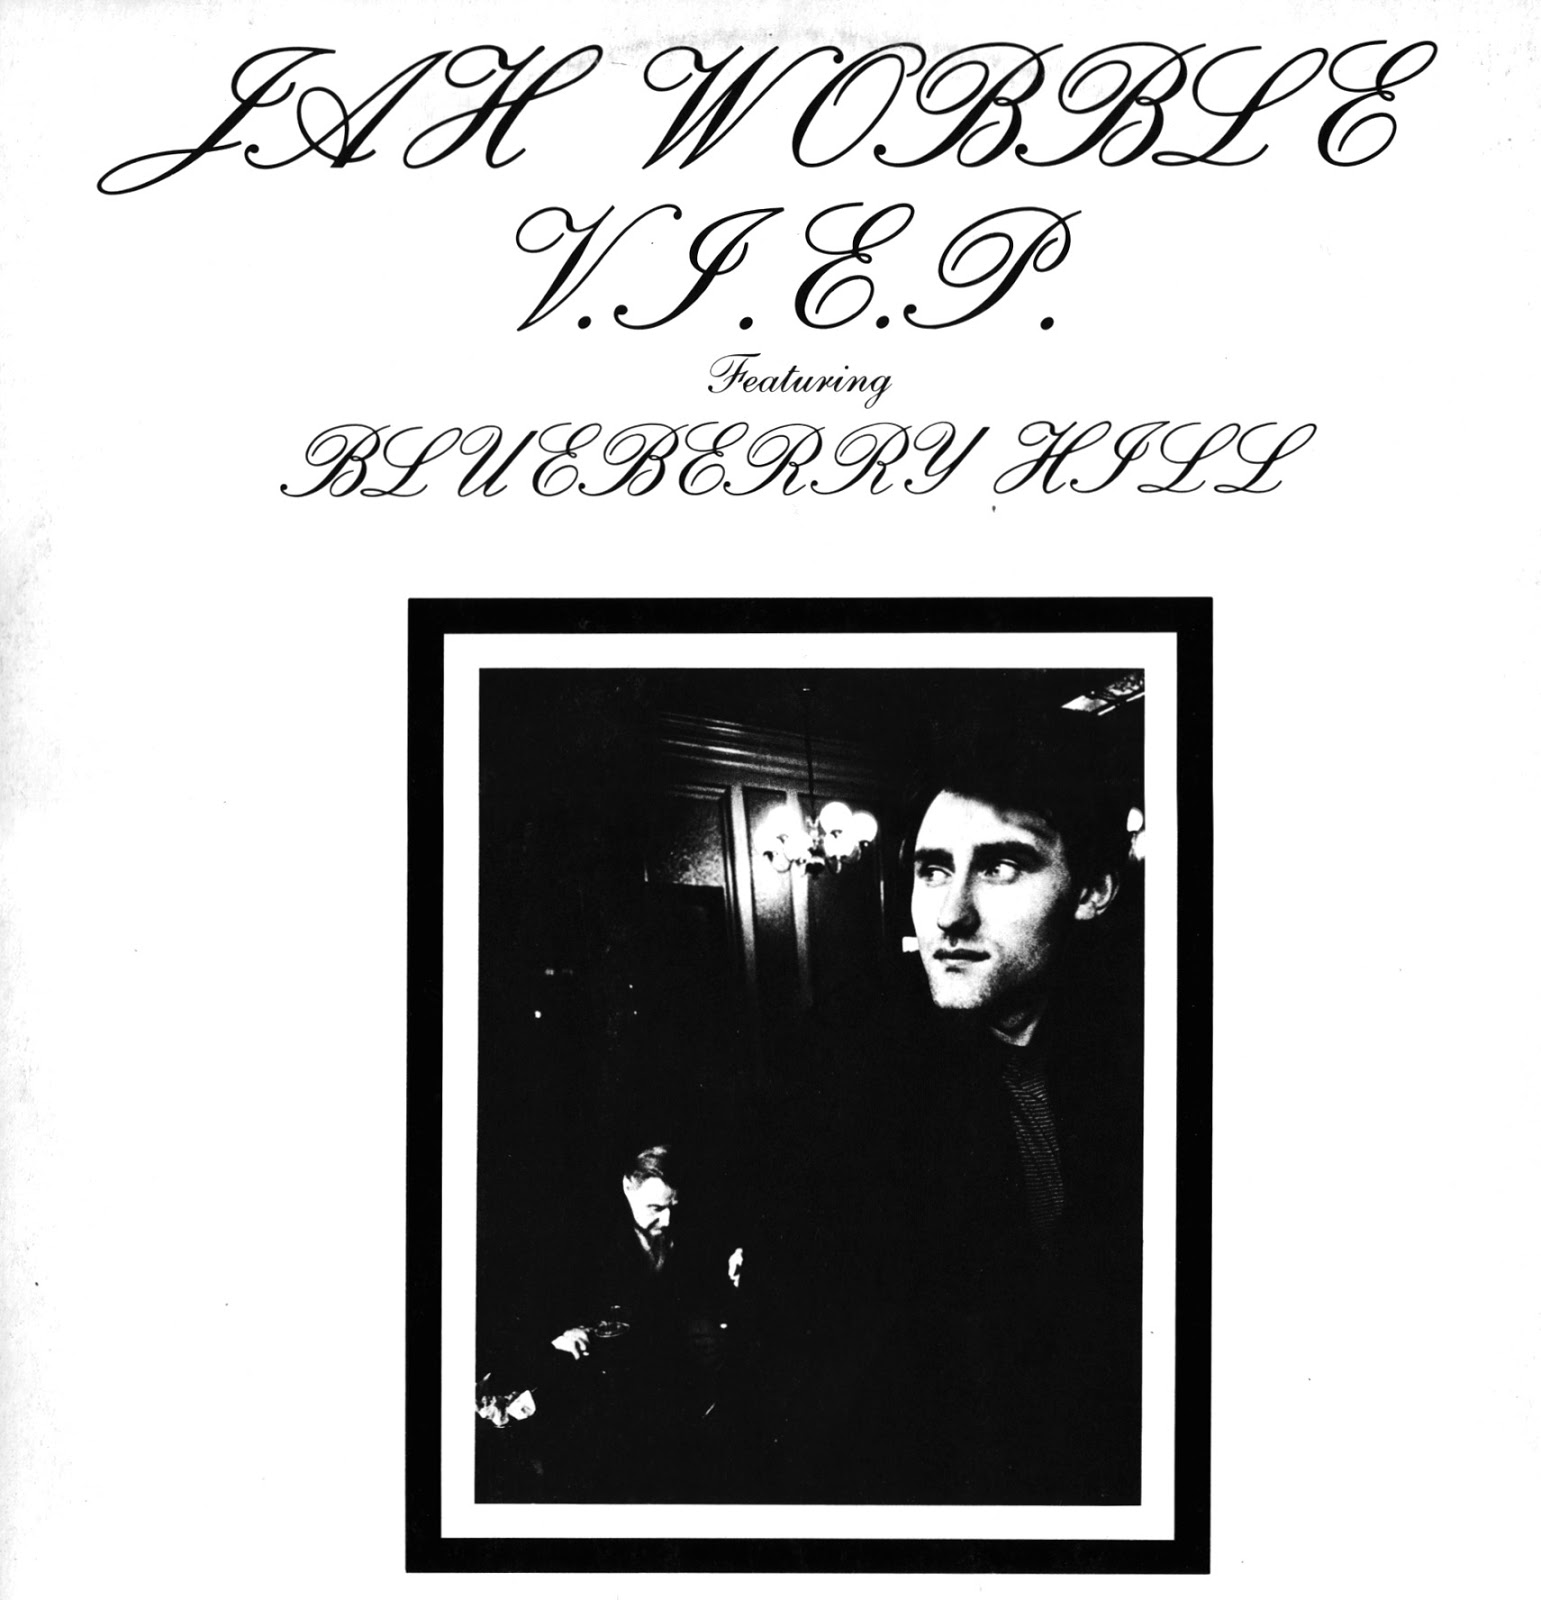 Jah Wobble VIEP Featuring Blueberry Hill